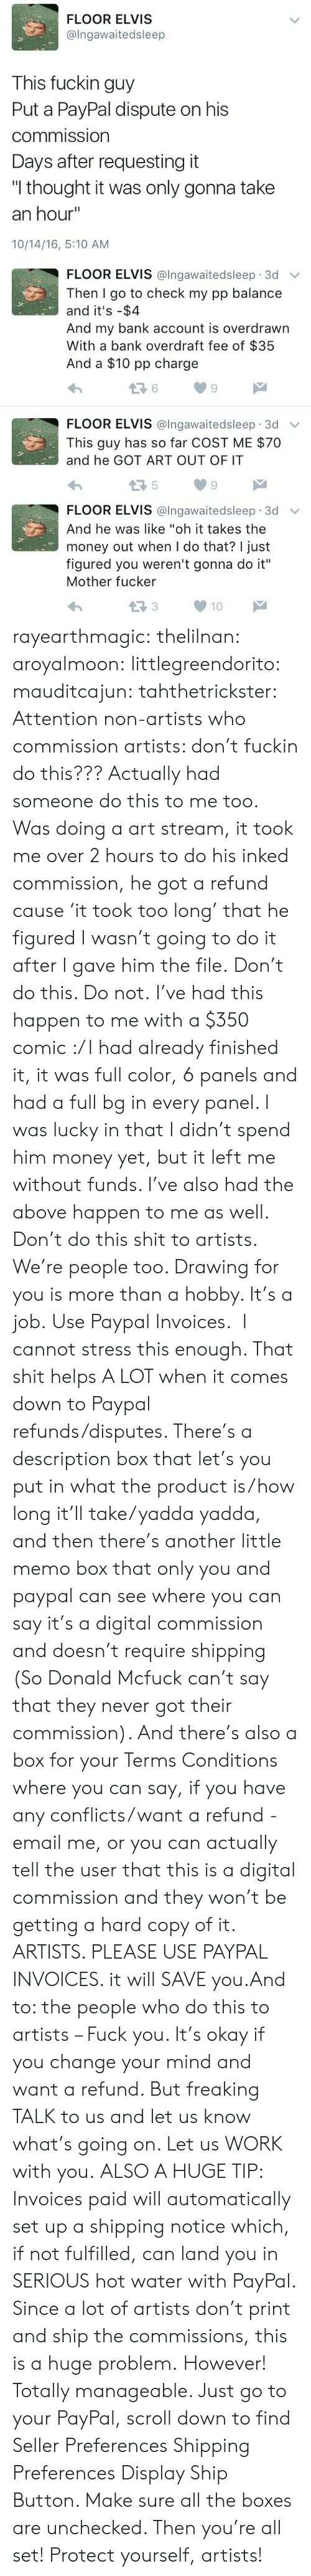 """Fuck You, Money, and Shit: FLOOR ELVIS  @Ingawaitedsleep  This fuckin guy  Put a PayPal dispute on his  commission  Days after requesting it  """"I thought it was only gonna take  an hour""""  10/14/16, 5:10 AM   FLOOR ELVIS @lngawaitedsleep 3d v  Then I go to check my pp balance  and it's -$4  And my bank account is overdrawn  With a bank overdraft fee of $35  And a $10 pp charge  6  9  FLOOR ELVIS @Ingawaitedsleep. 3d ﹀  This guy has so far COST ME $70  and he GOT ART OUT OF IT  5  9   FLOOR ELVIS @lngawaitedsleep 3d v  And he was like """"oh it takes the  money out when I do that? I just  figured you weren't gonna do it""""  Mother fucker  13310 rayearthmagic: thelilnan:  aroyalmoon:  littlegreendorito:  mauditcajun:  tahthetrickster:  Attention non-artists who commission artists: don't fuckin do this???  Actually had someone do this to me too. Was doing a art stream, it took me over 2 hours to do his inked commission, he got a refund cause 'it took too long' that he figured I wasn't going to do it after I gave him the file. Don't do this. Do not.  I've had this happen to me with a $350 comic :/ I had already finished it, it was full color, 6 panels and had a full bg in every panel. I was lucky in that I didn't spend him money yet, but it left me without funds. I've also had the above happen to me as well. Don't do this shit to artists. We're people too. Drawing for you is more than a hobby. It's a job.   Use Paypal Invoices. I cannot stress this enough. That shit helps A LOT when it comes down to Paypal refunds/disputes. There's a description box that let's you put in what the product is/how long it'll take/yadda yadda, and then there's another little memo box that only you and paypal can see where you can say it's a digital commission and doesn't require shipping (So Donald Mcfuck can't say that they never got their commission). And there's also a box for your Terms  Conditions where you can say, if you have any conflicts/want a refund - email me, or you can actually tell """